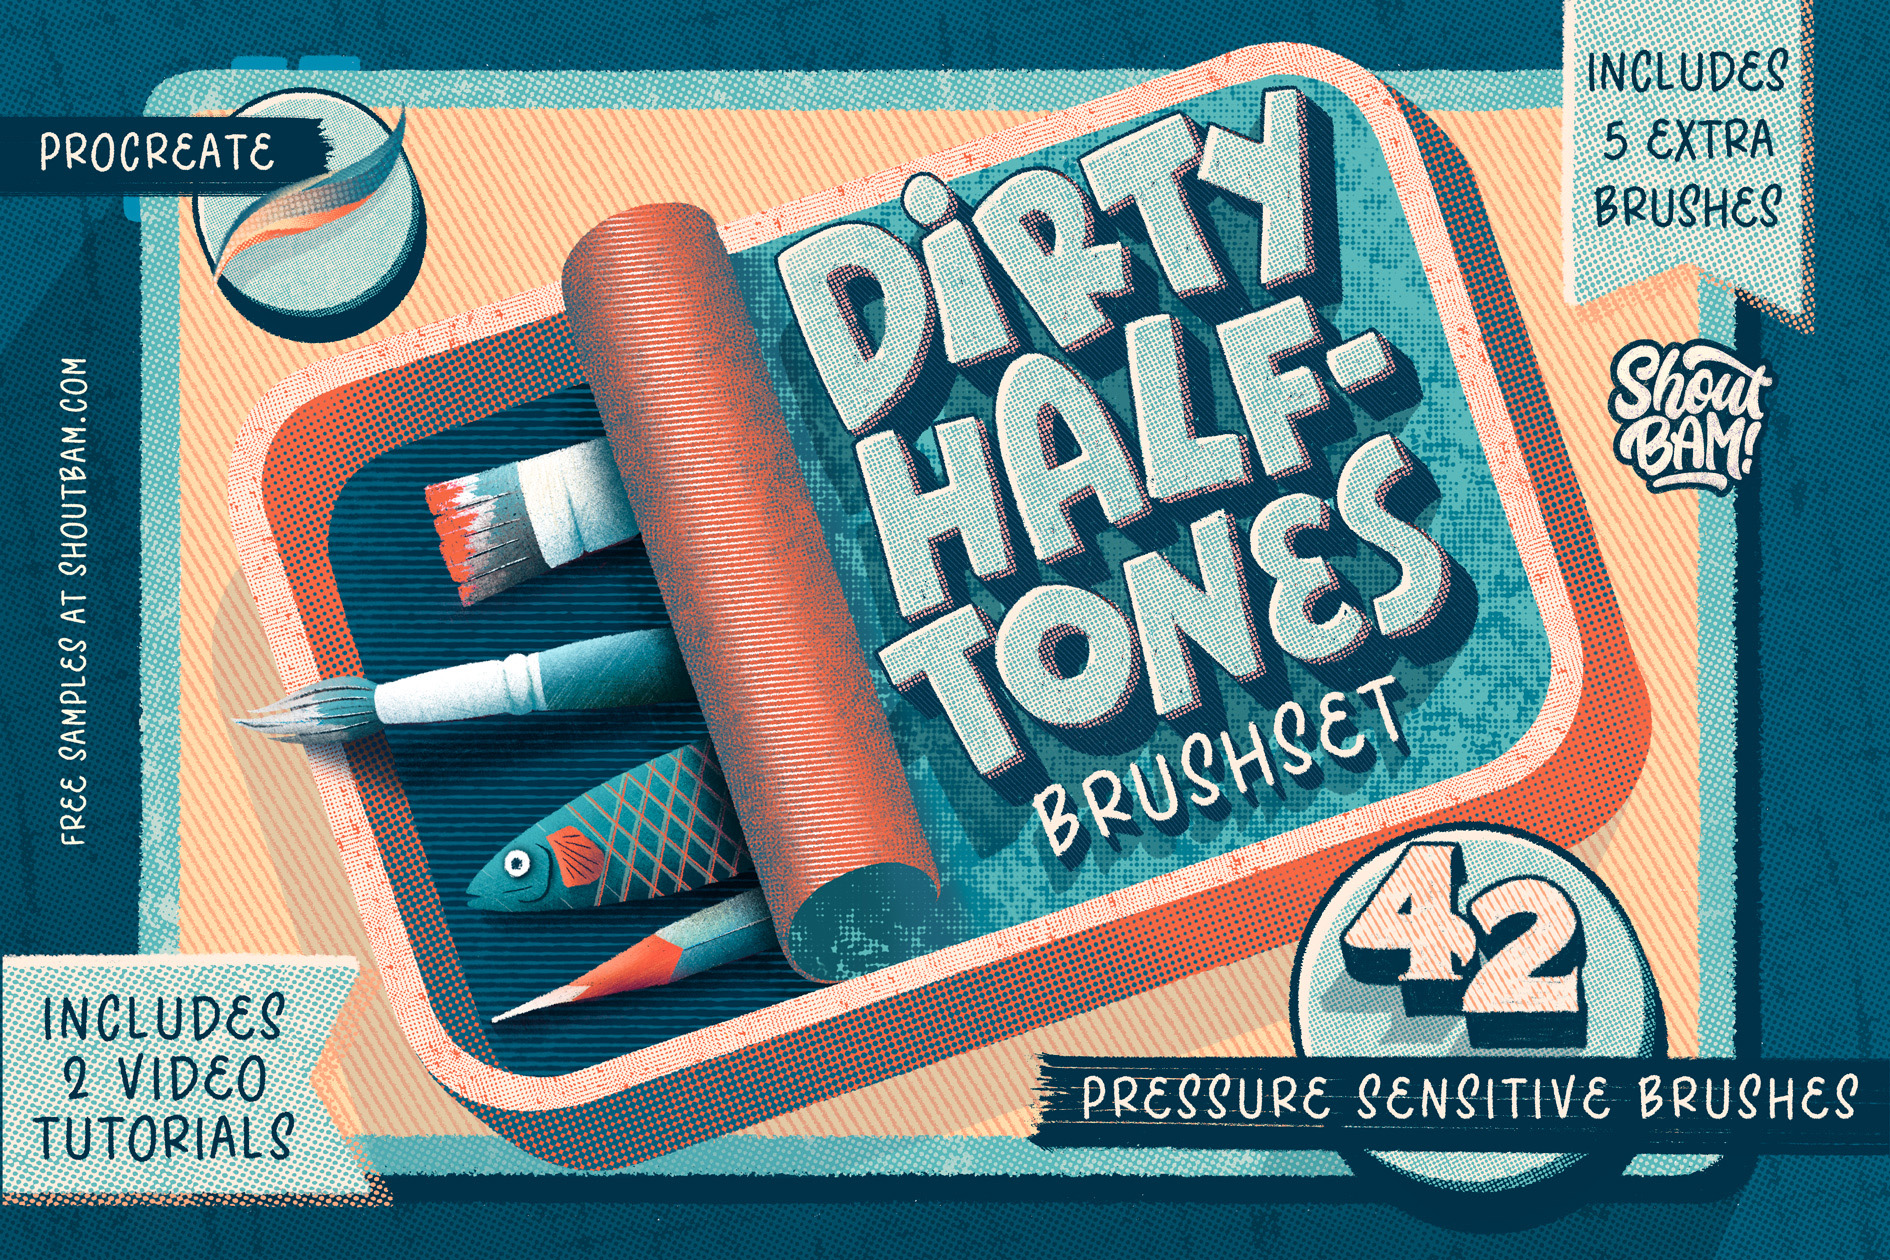 Dirty Halftones BrushSet & Video Tutorials